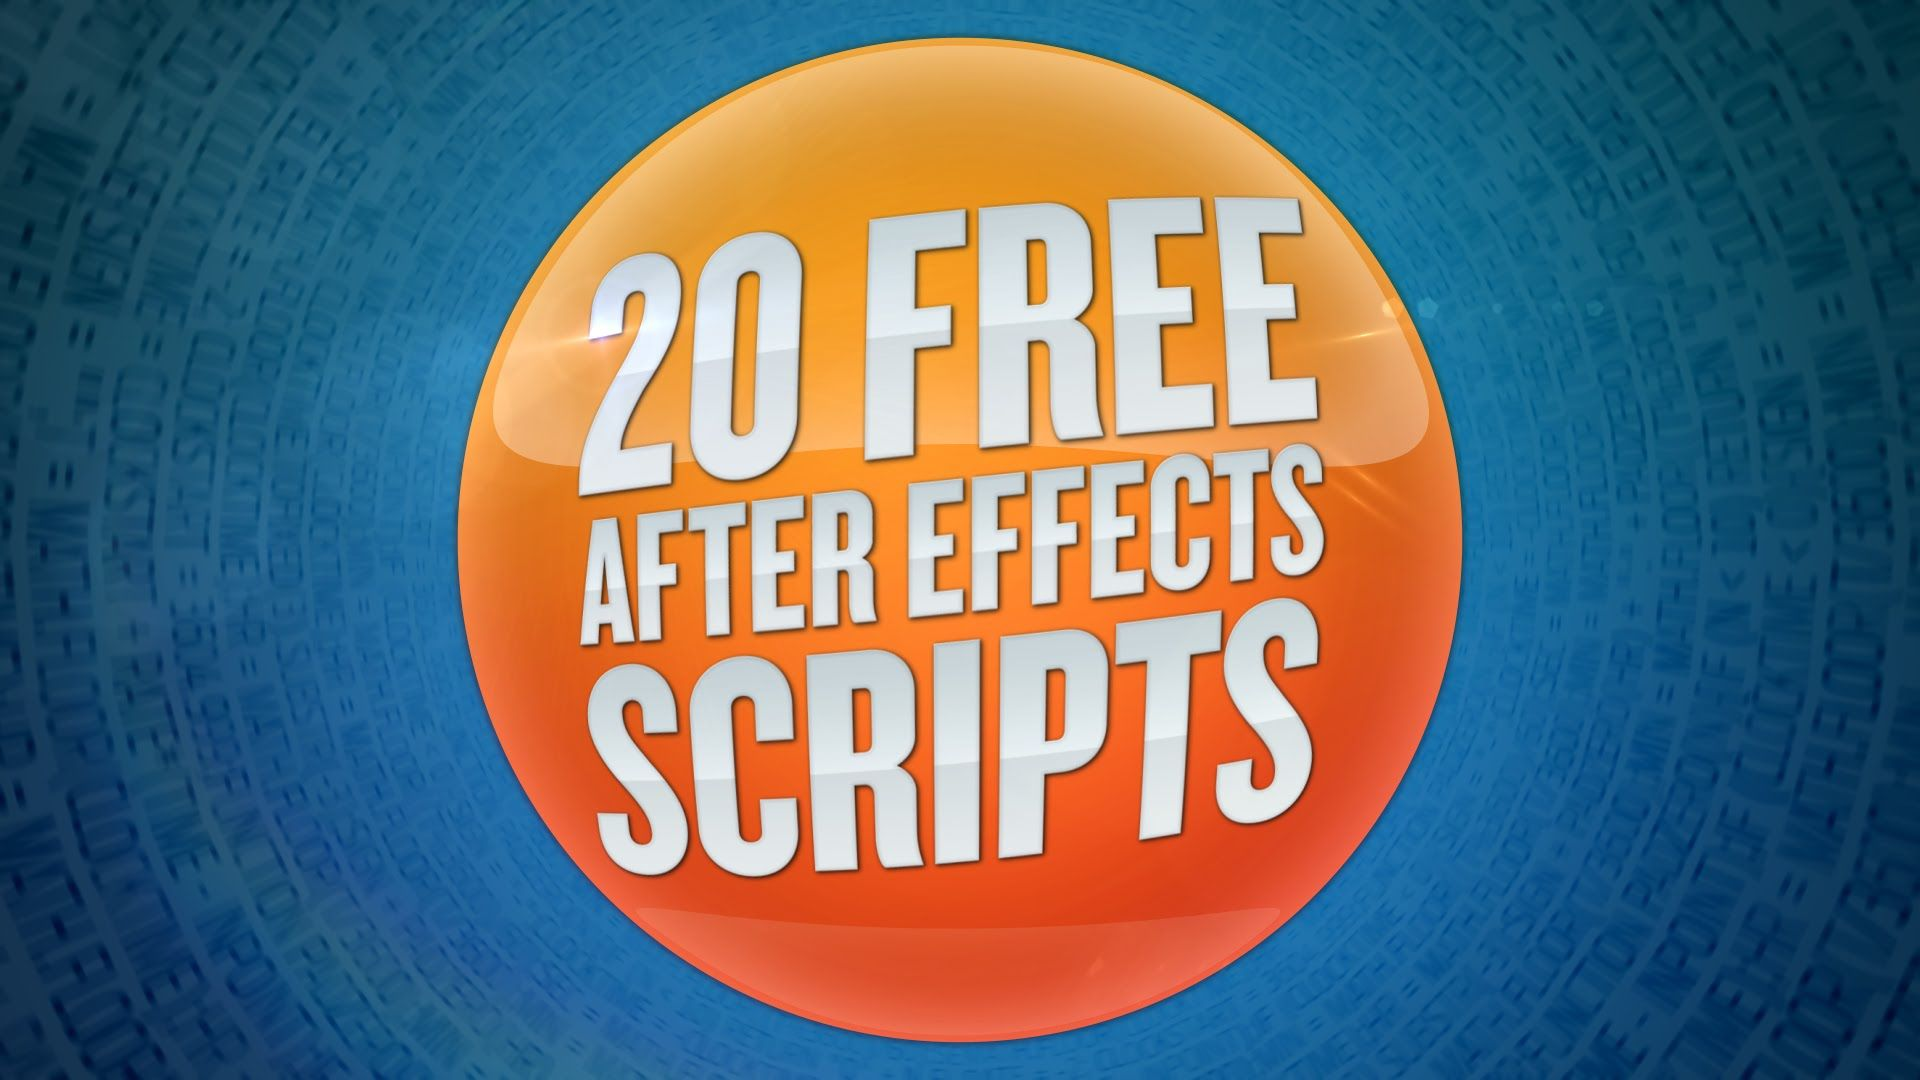 Jeff Almasol from http://redefinery.com has made a bundle of 50 After Effects scripts available for free at http://redefinery.com/ae/rd_scripts/. These scrip...